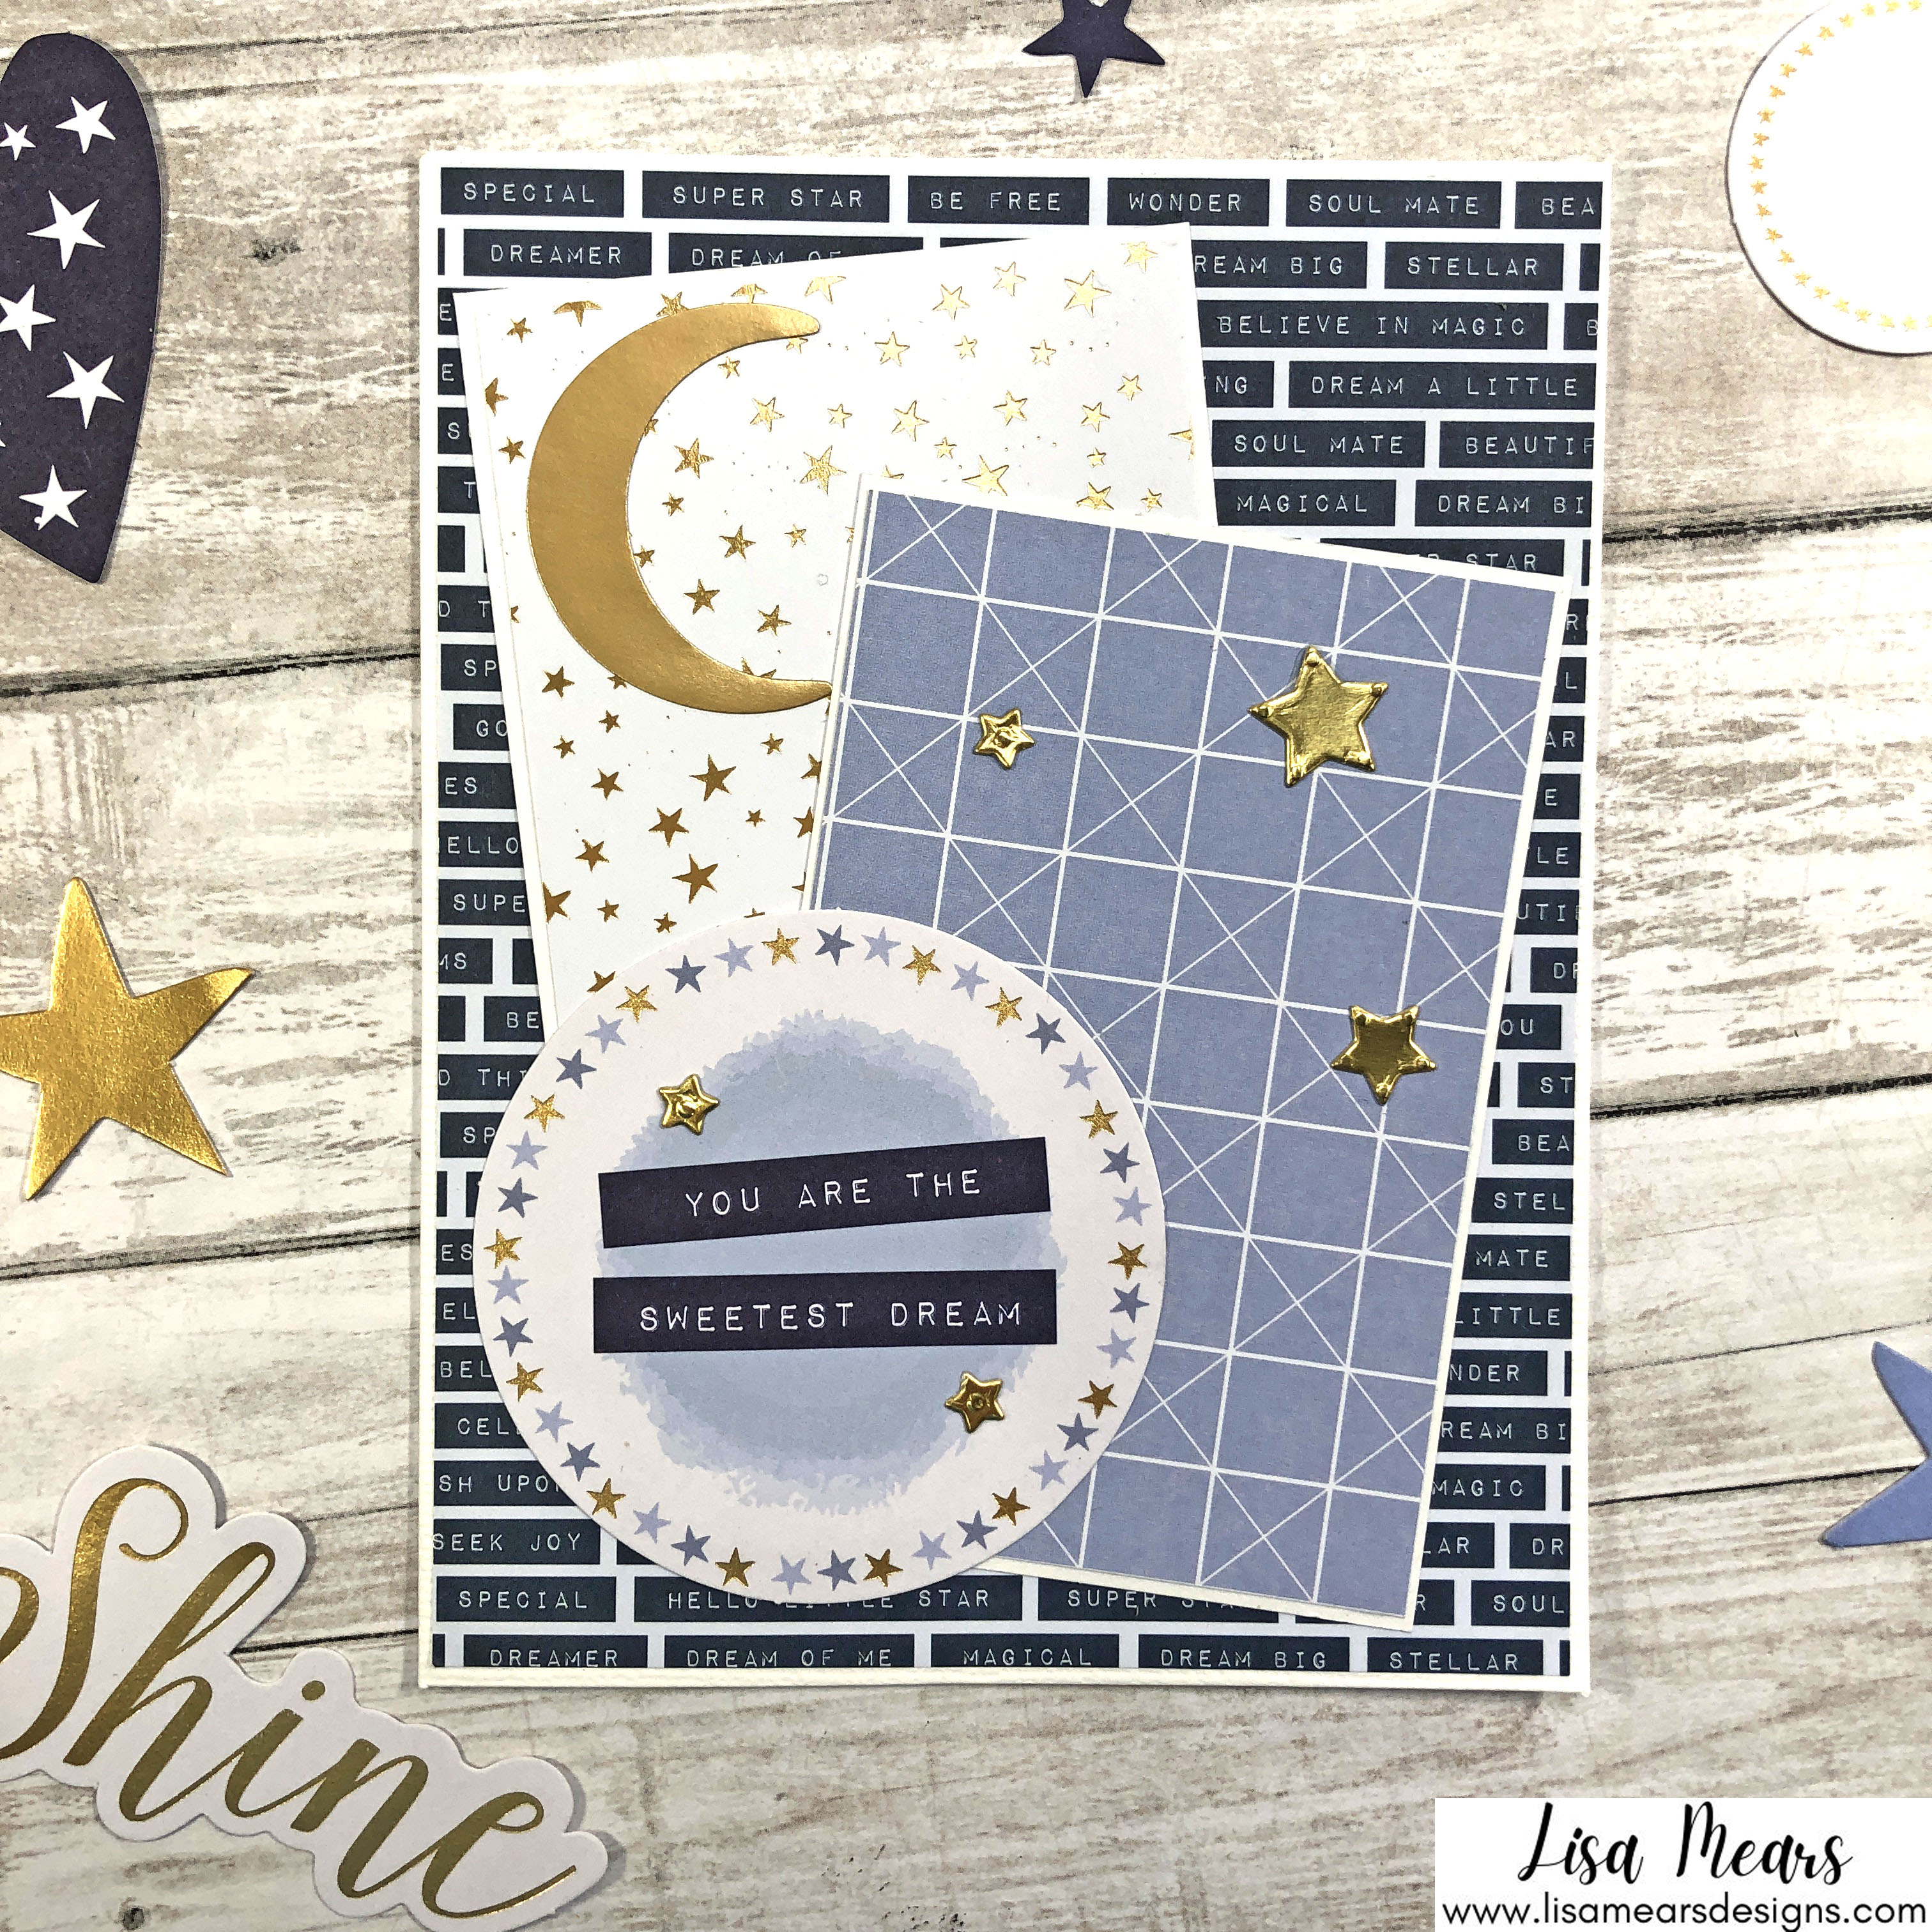 Spellbinders October 2021 Card Kit - You are Stellar! Card with stars